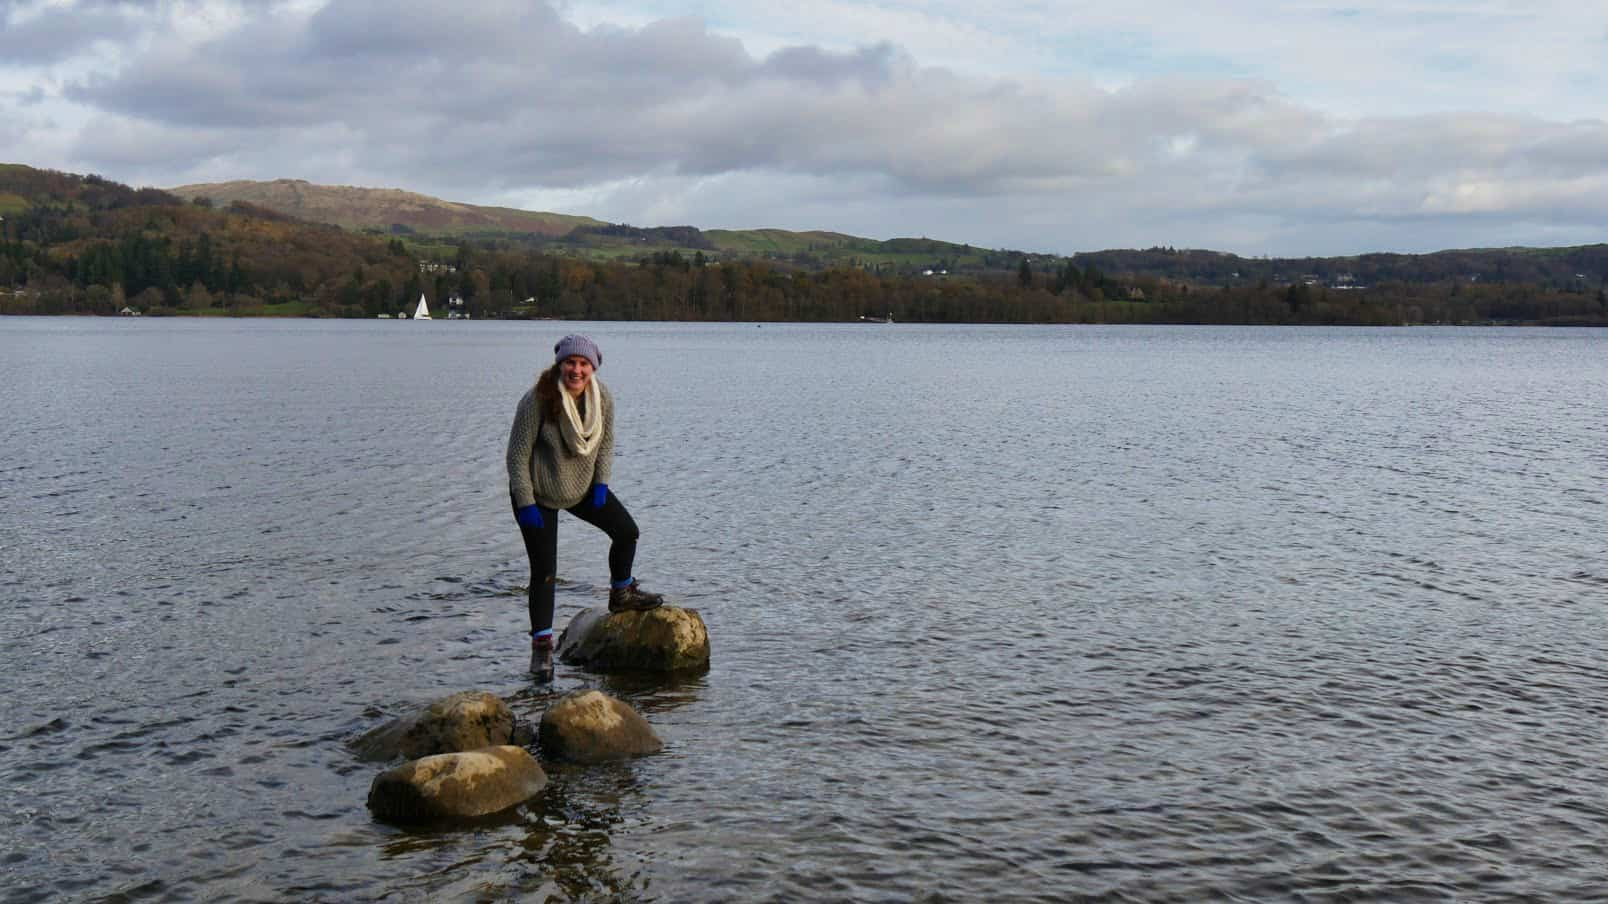 Kalyn standing on rocks in the middle of a lake surrounded by water